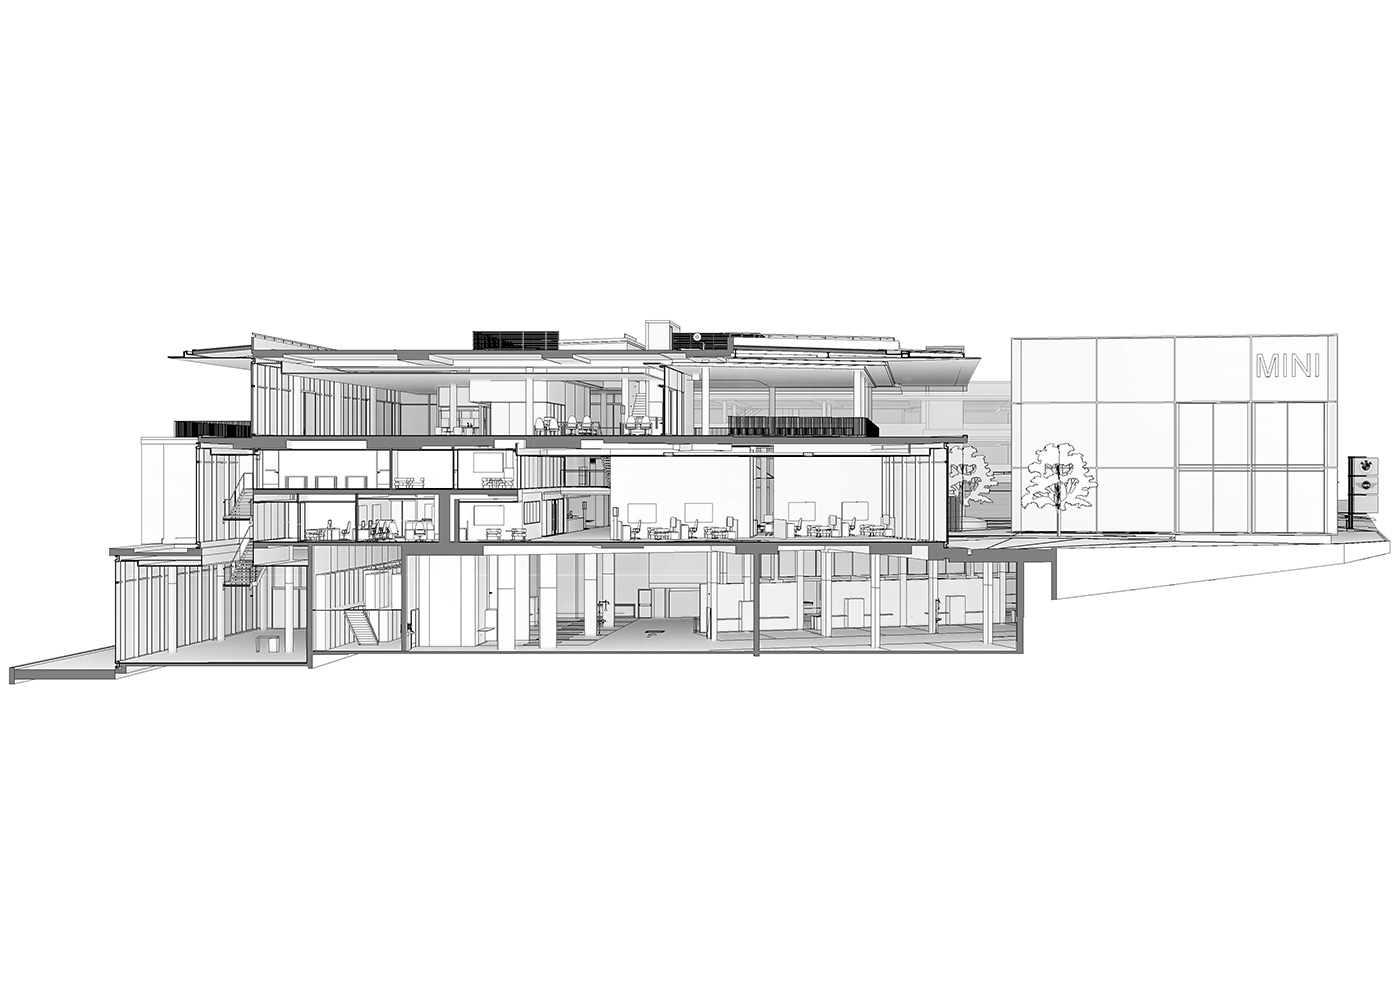 drawable autocad revit specialists see examples of our drafting work